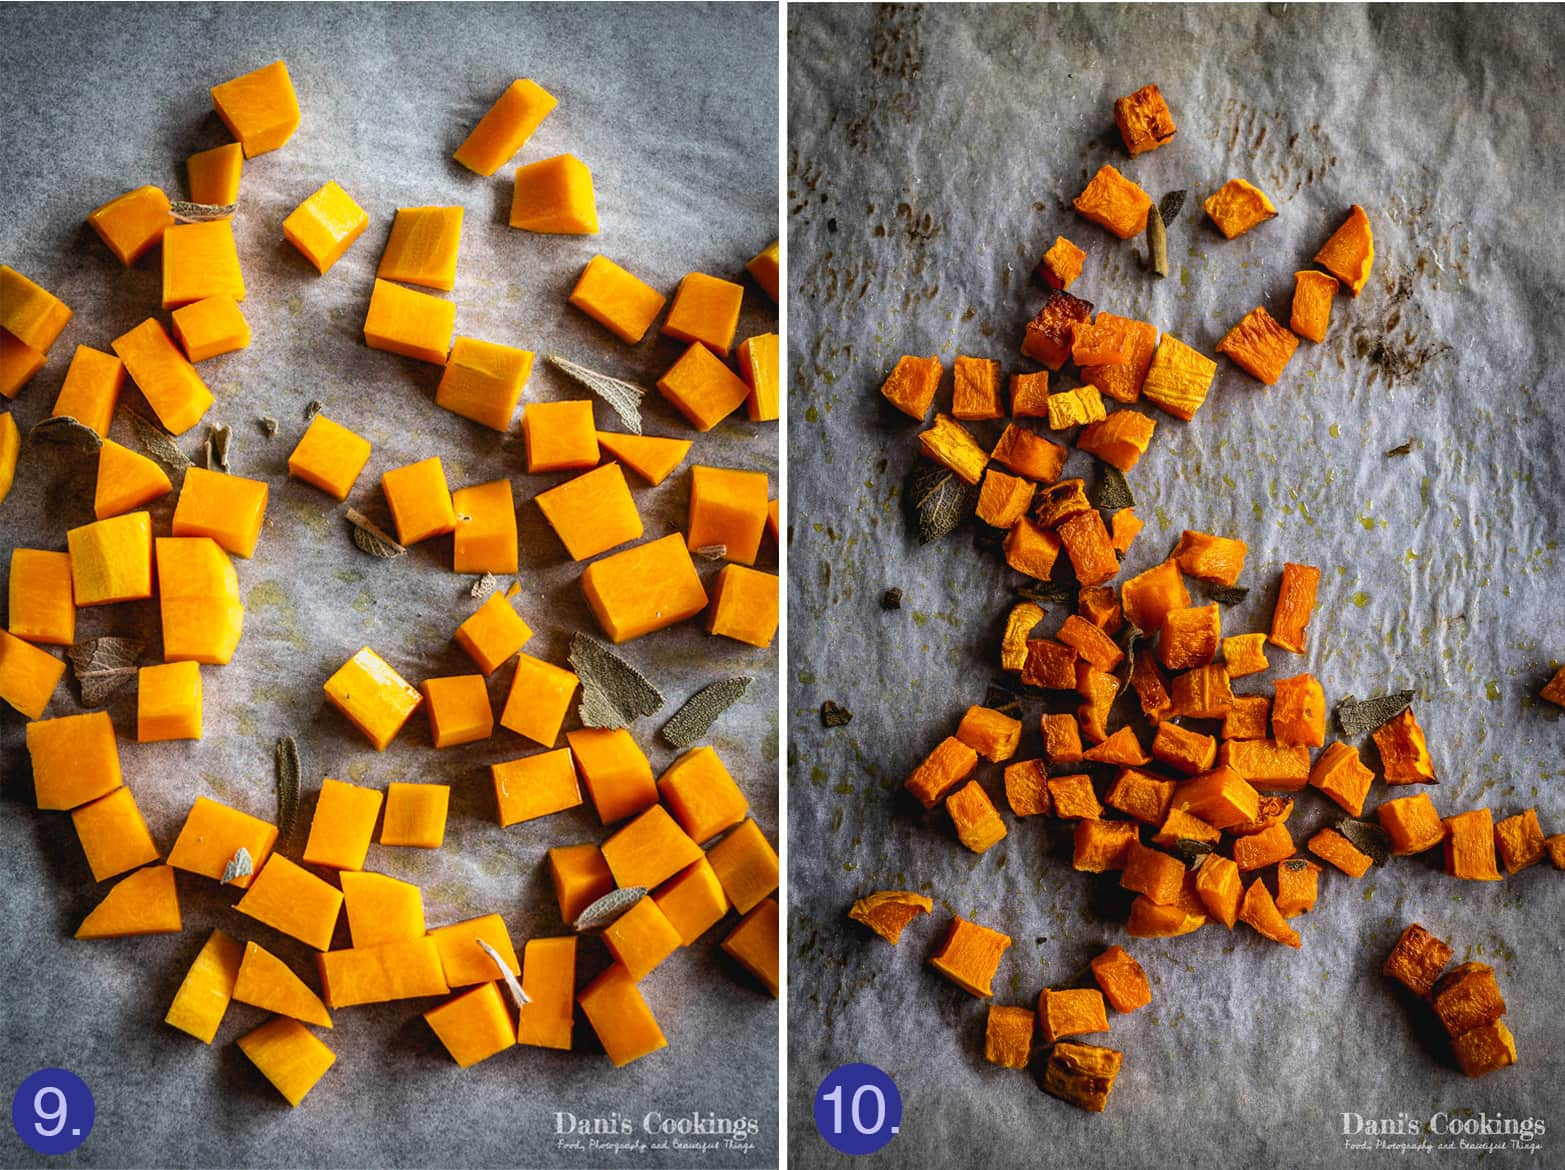 pumpkin cubes before and after roasting